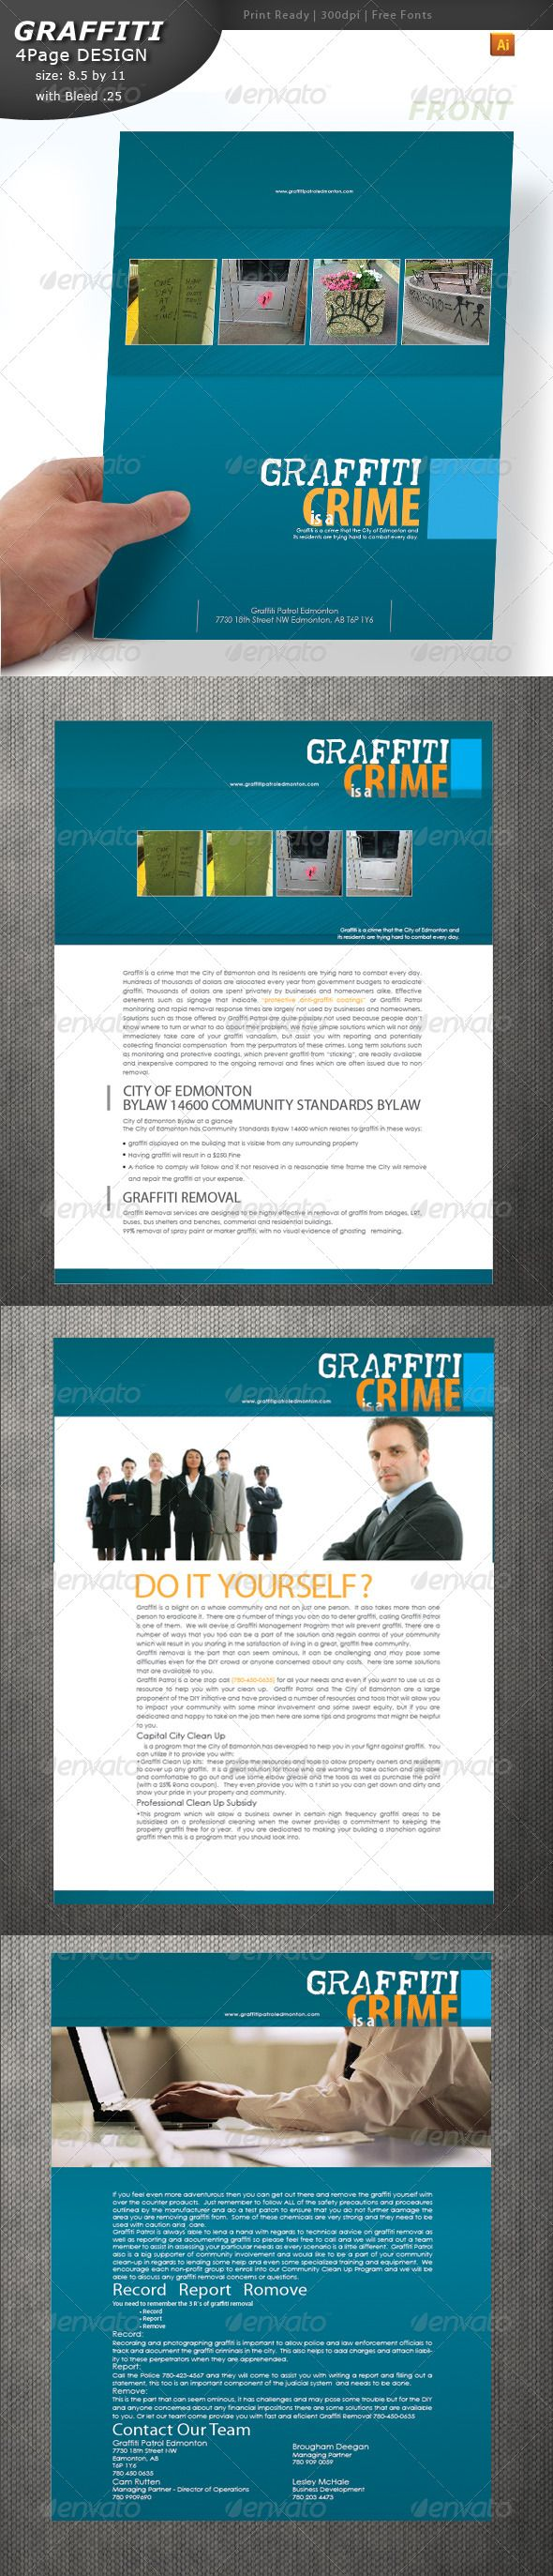 80 best images about print templates on pinterest for Brochure templates for photoshop cs5